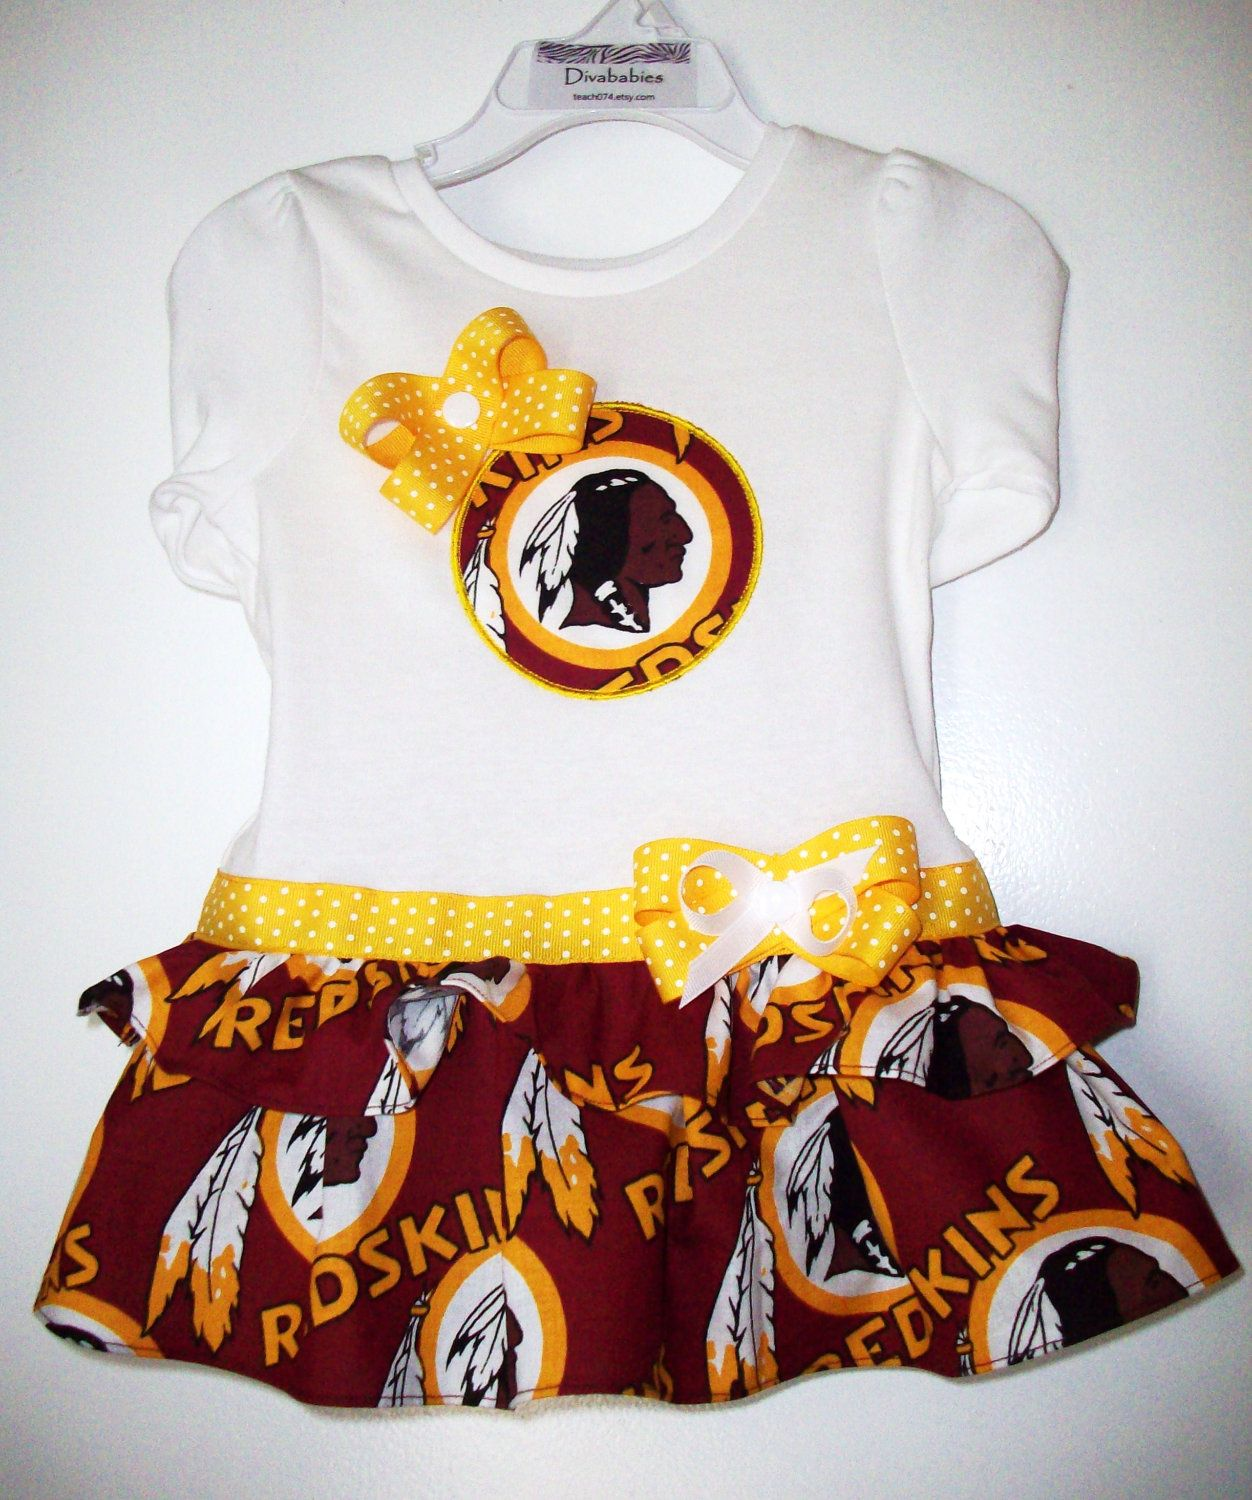 NFL Washington Redskins Custom Boutique Diva Style Appliqued Ruffled T-Shirt  Dress- or You Choose NFL Team.  28.00 946be7ad1